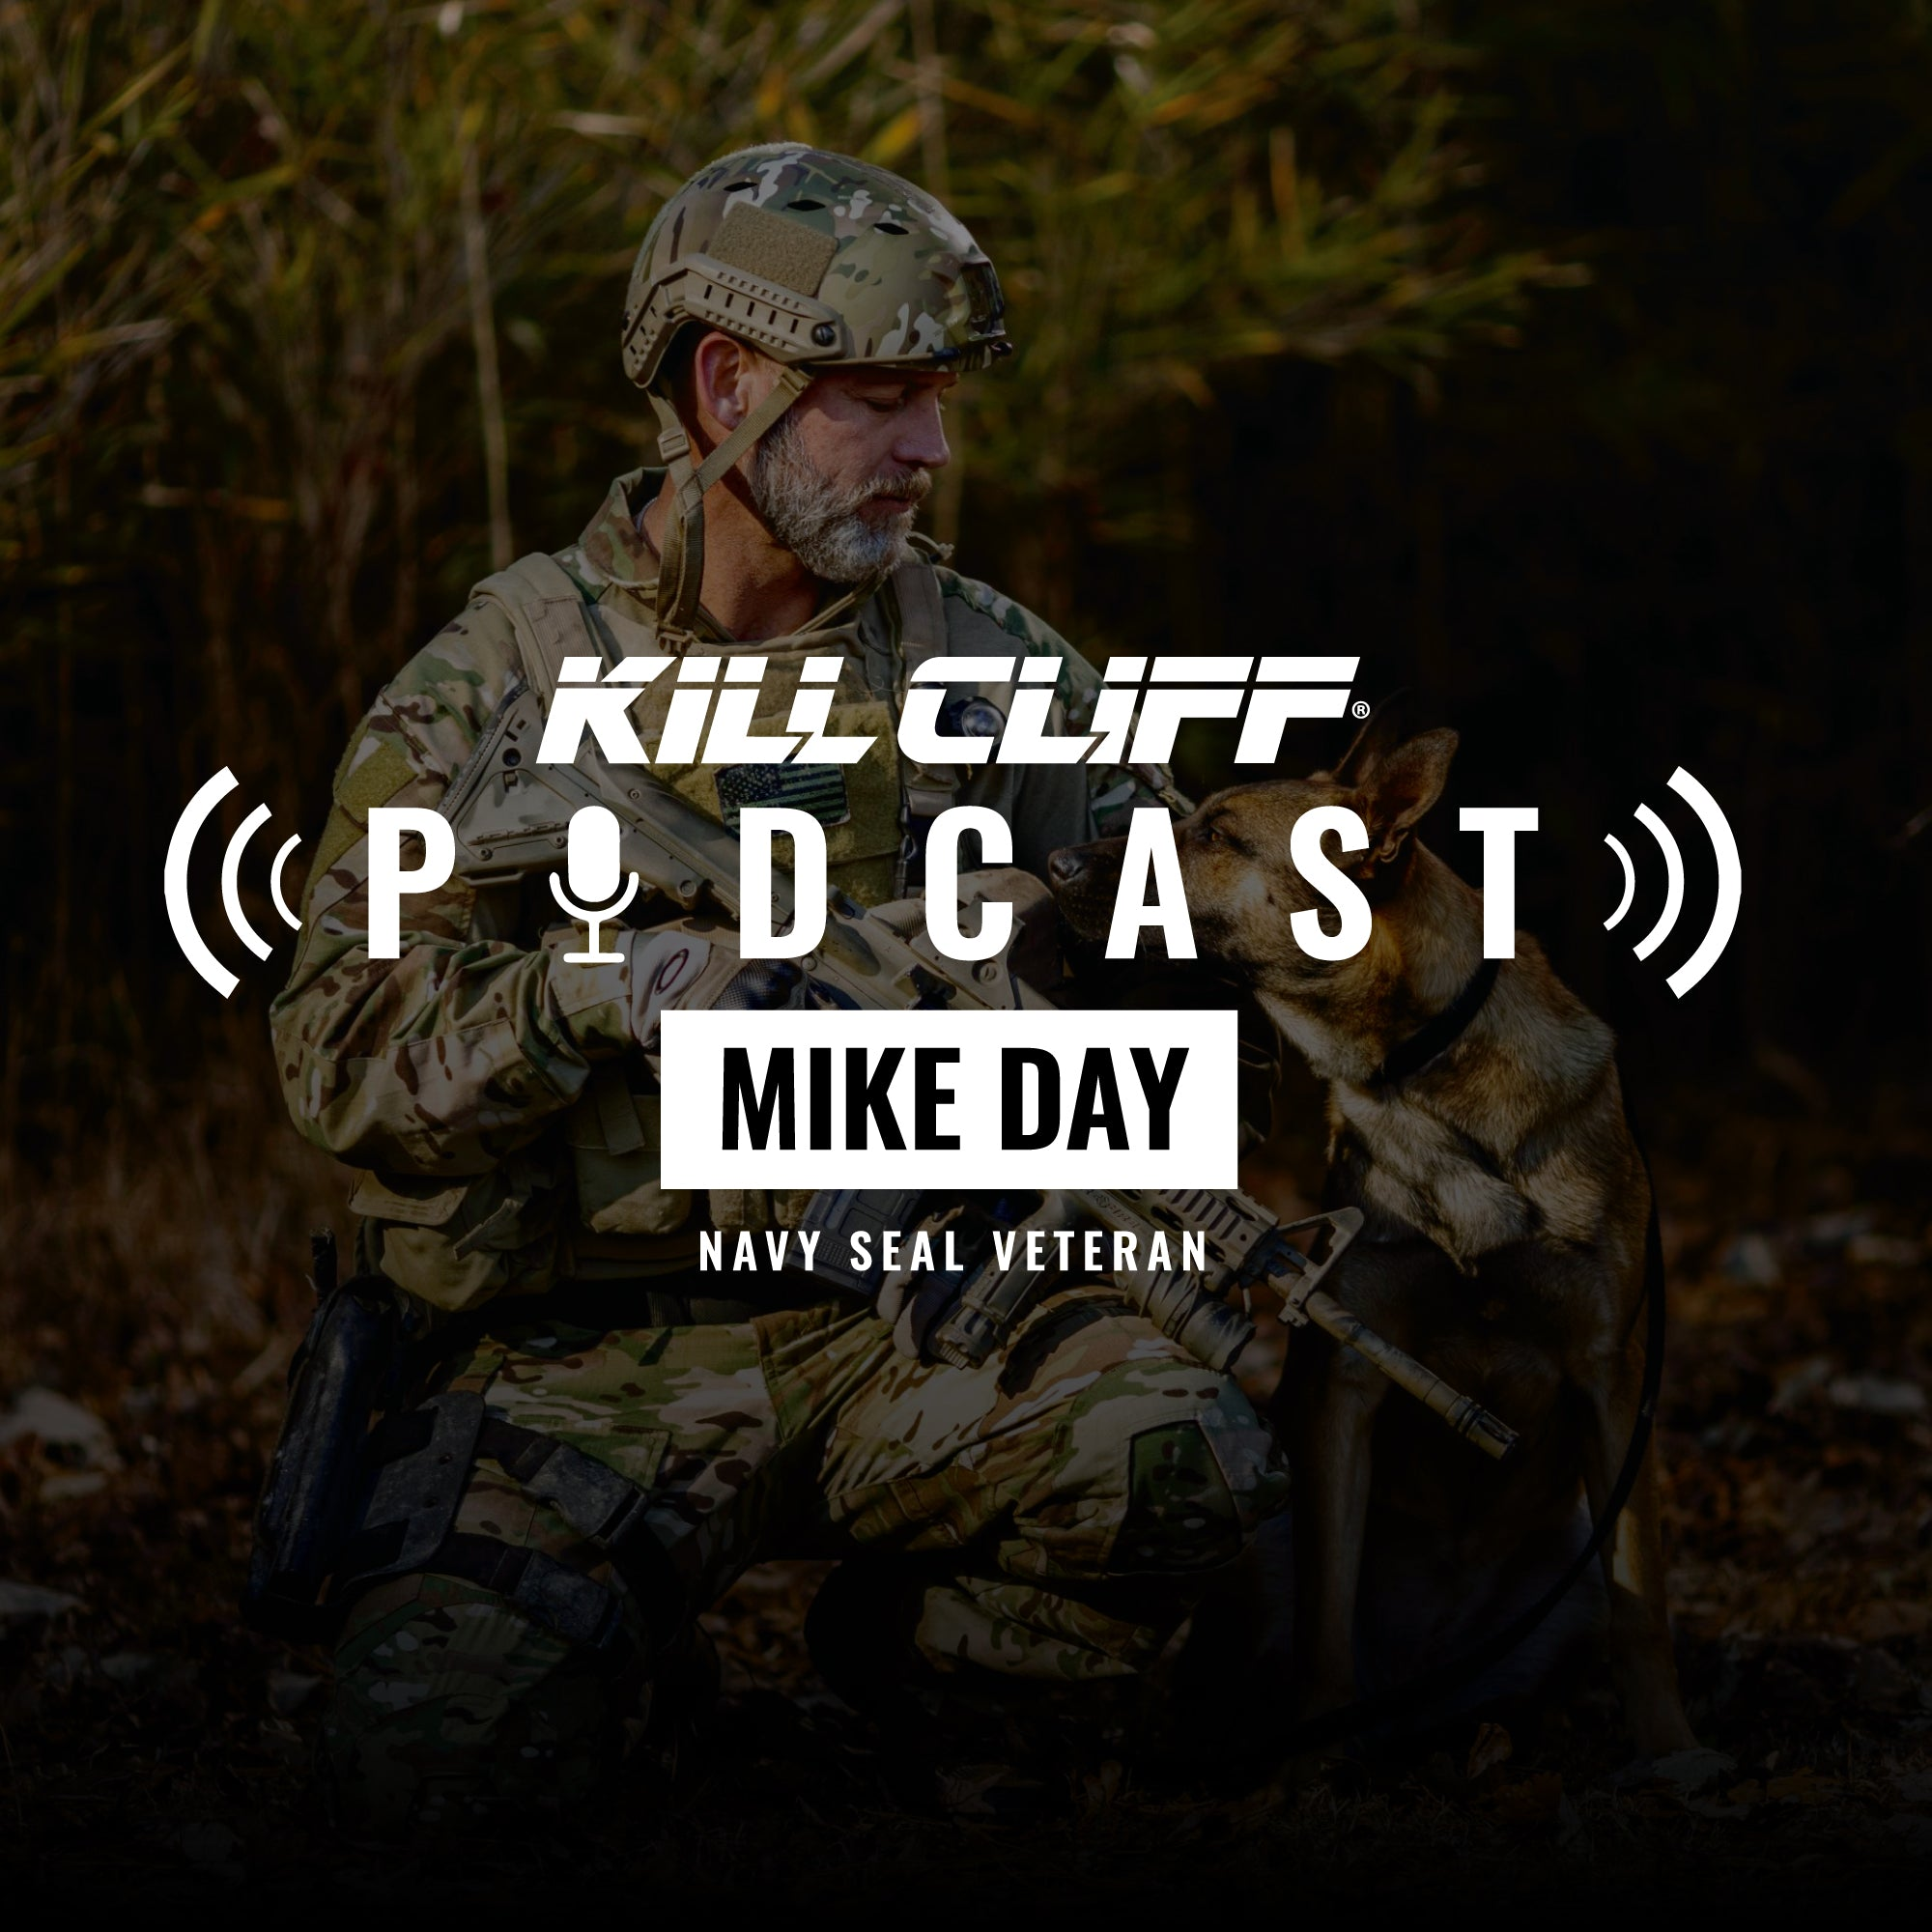 Mike Day - Navy SEAL veteran